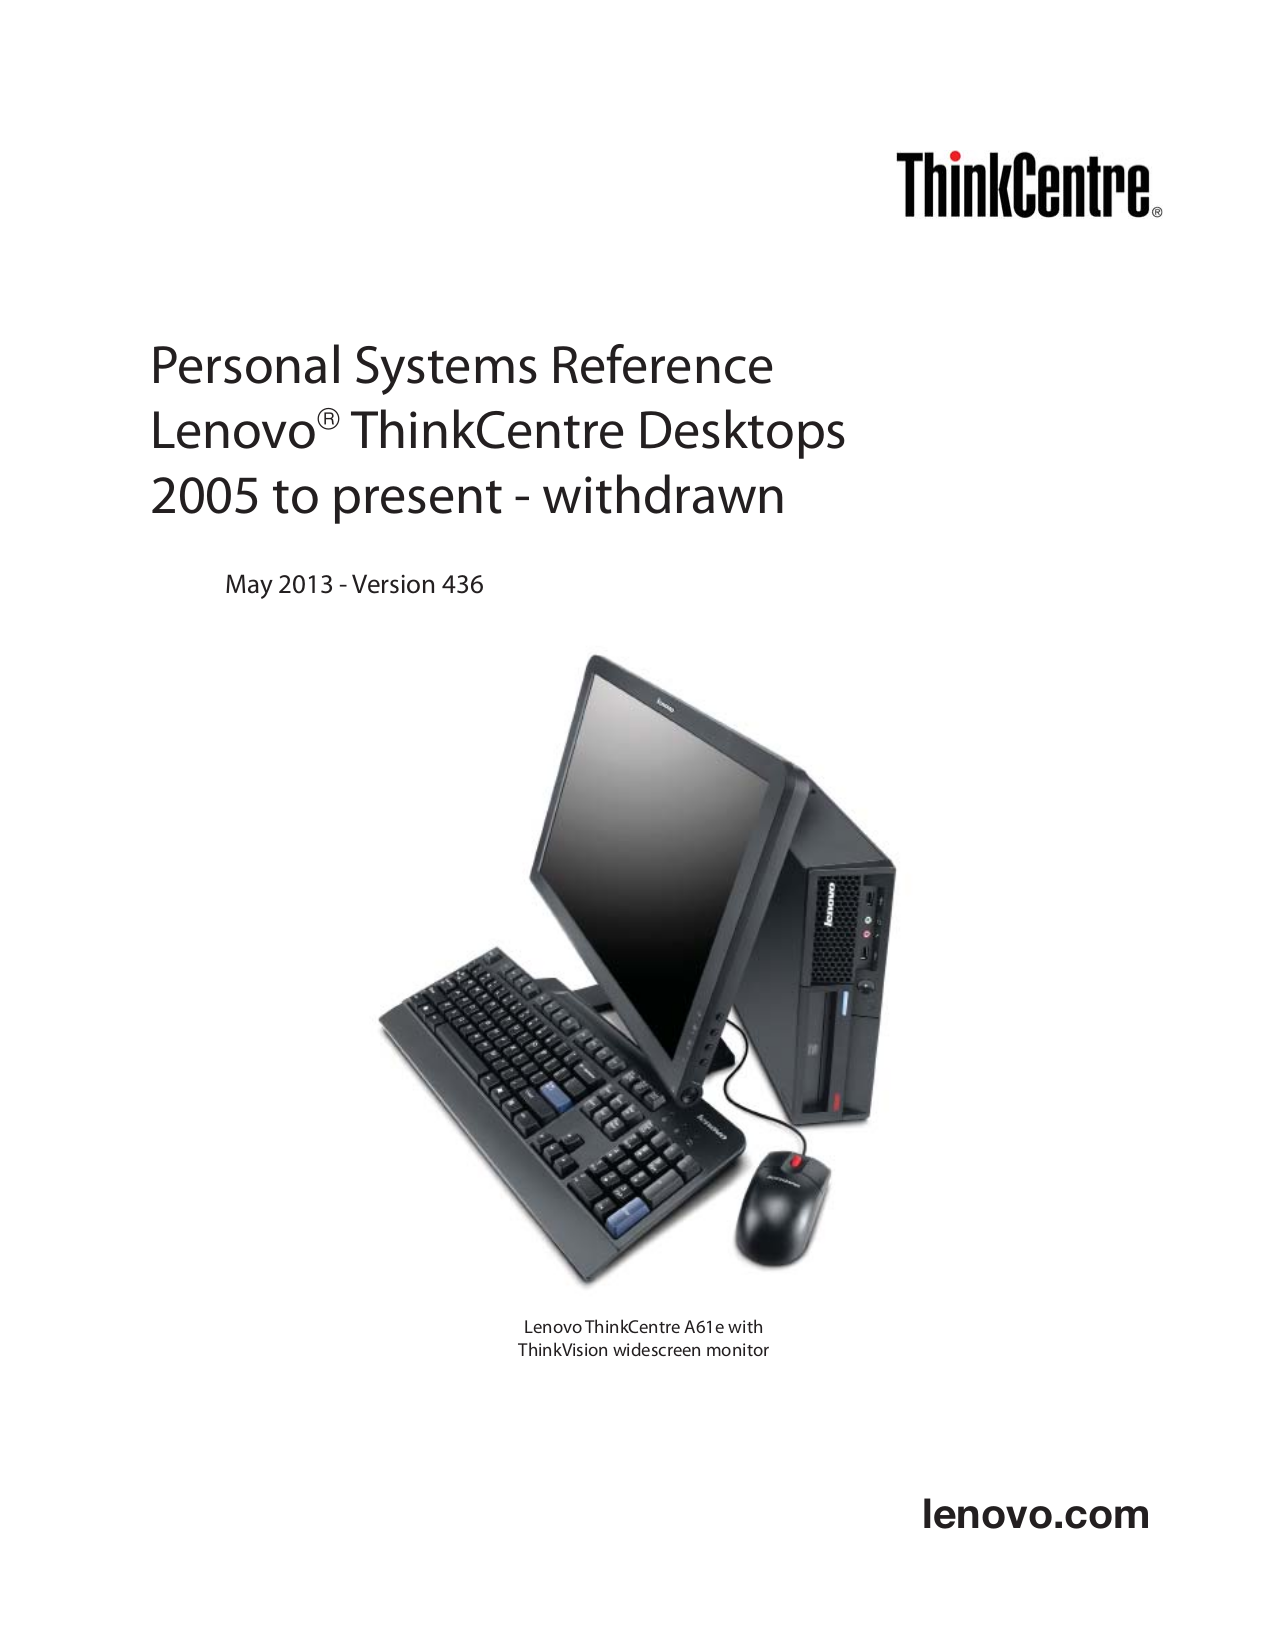 pdf for Lenovo Desktop ThinkCentre M55p 8808 manual